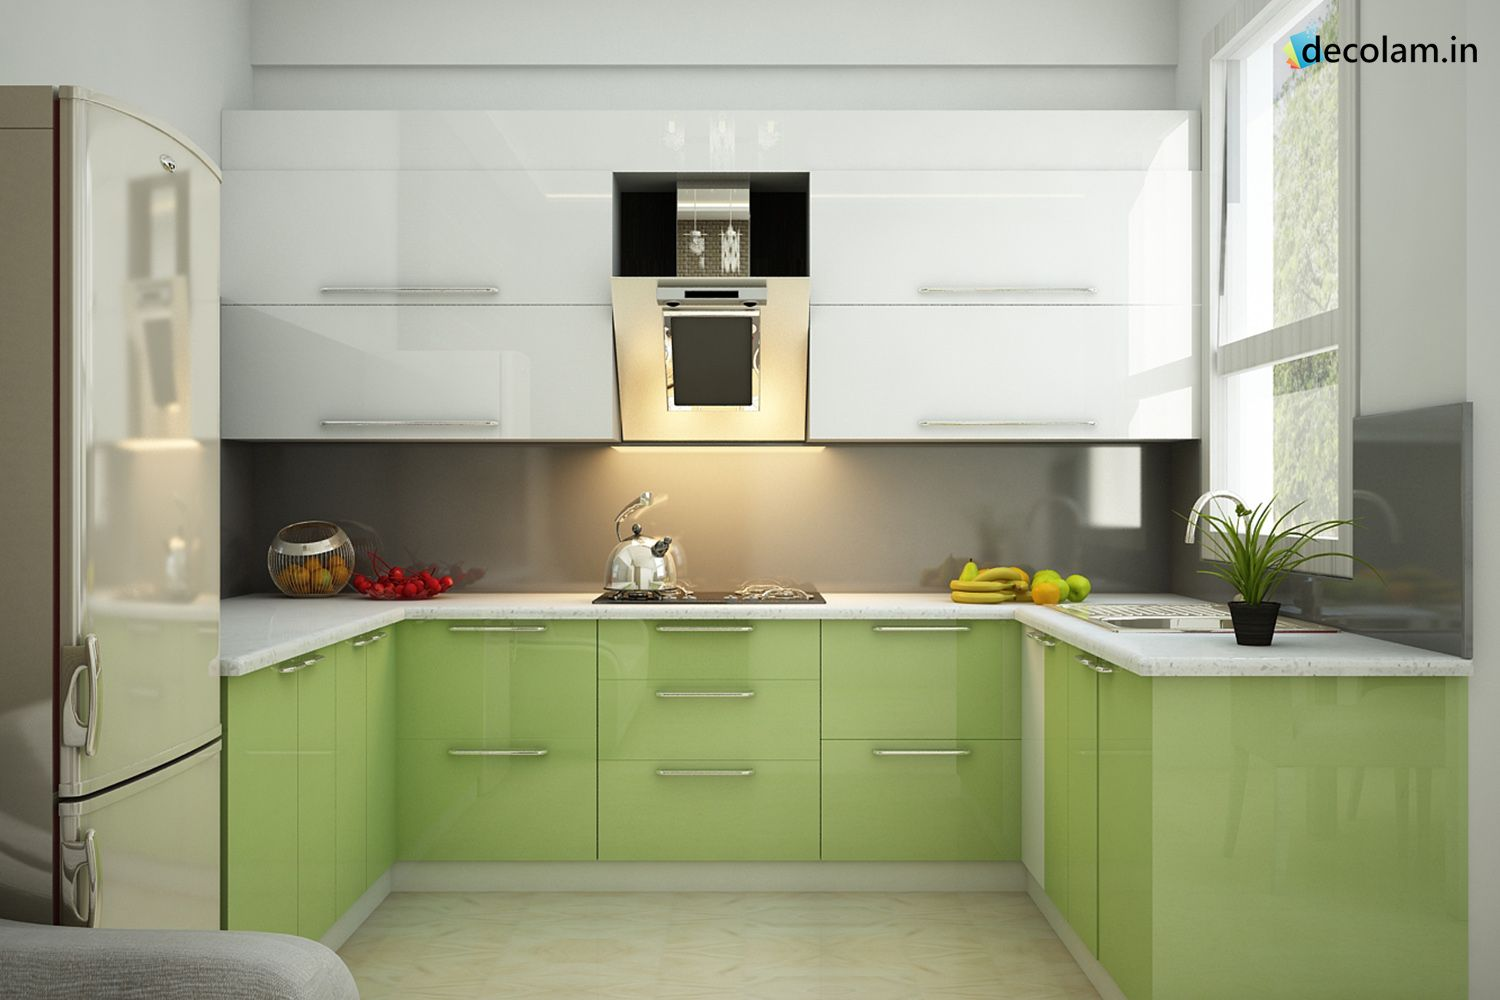 Wonderful U Kitchen That Will Leave You Breathless Get Many More Textures From Virgo Mica Laminates Kitchen Green Kitchen Kitchen Cabinets